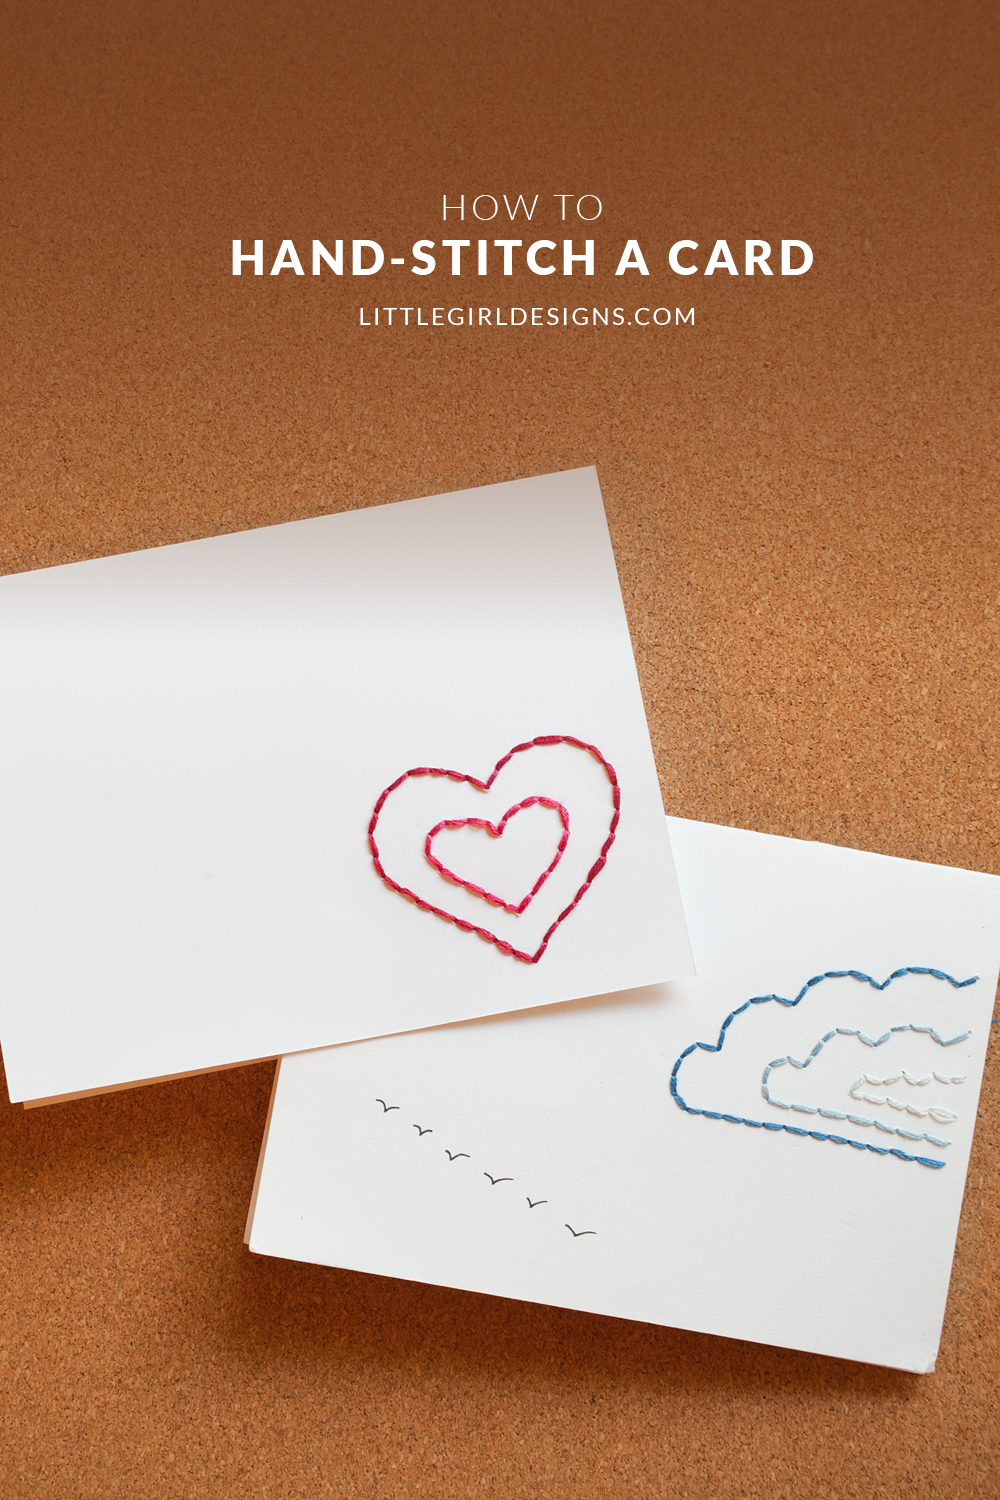 How to Hand-stitch a Card - Learn how to hand-stitch a card with these easy steps @ littlegirldesigns.com